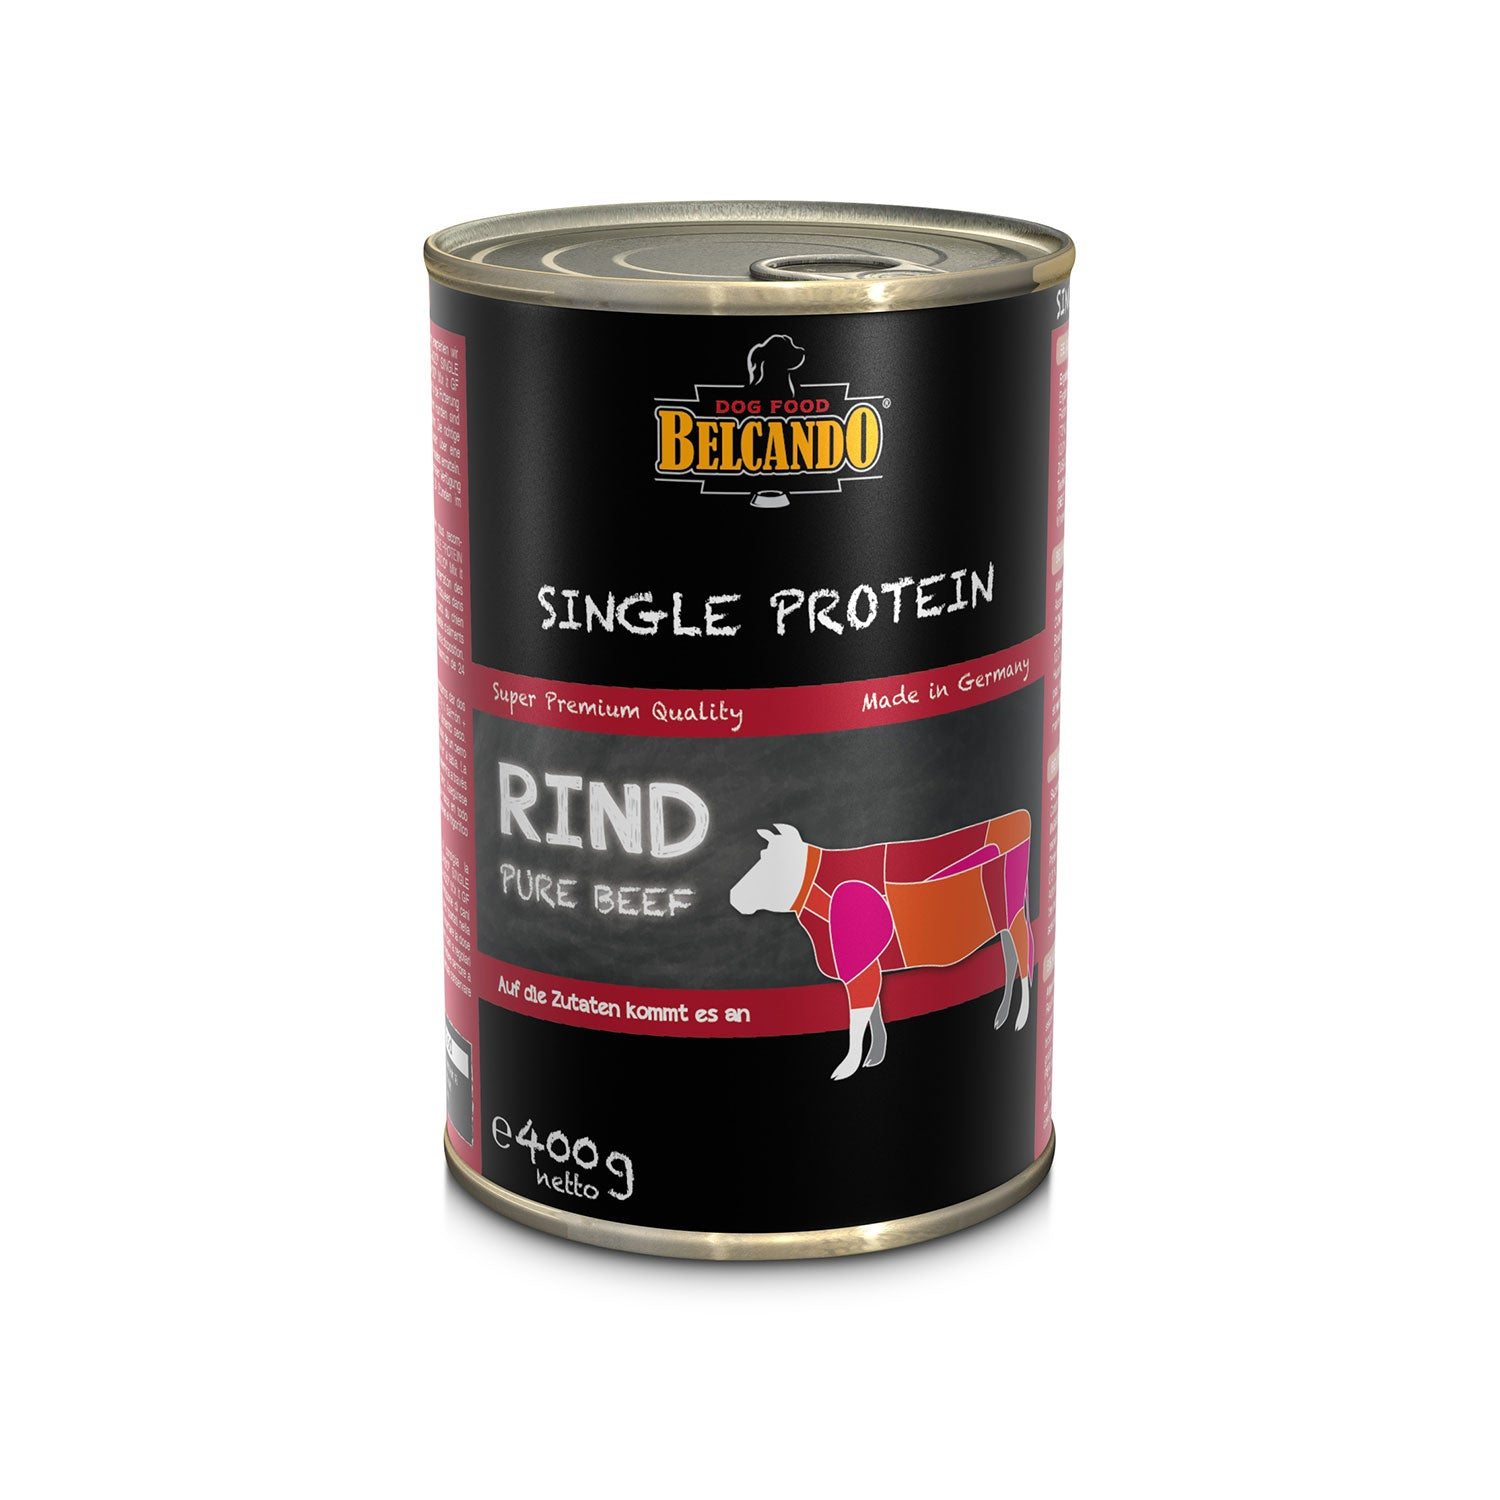 Single Protein Rind